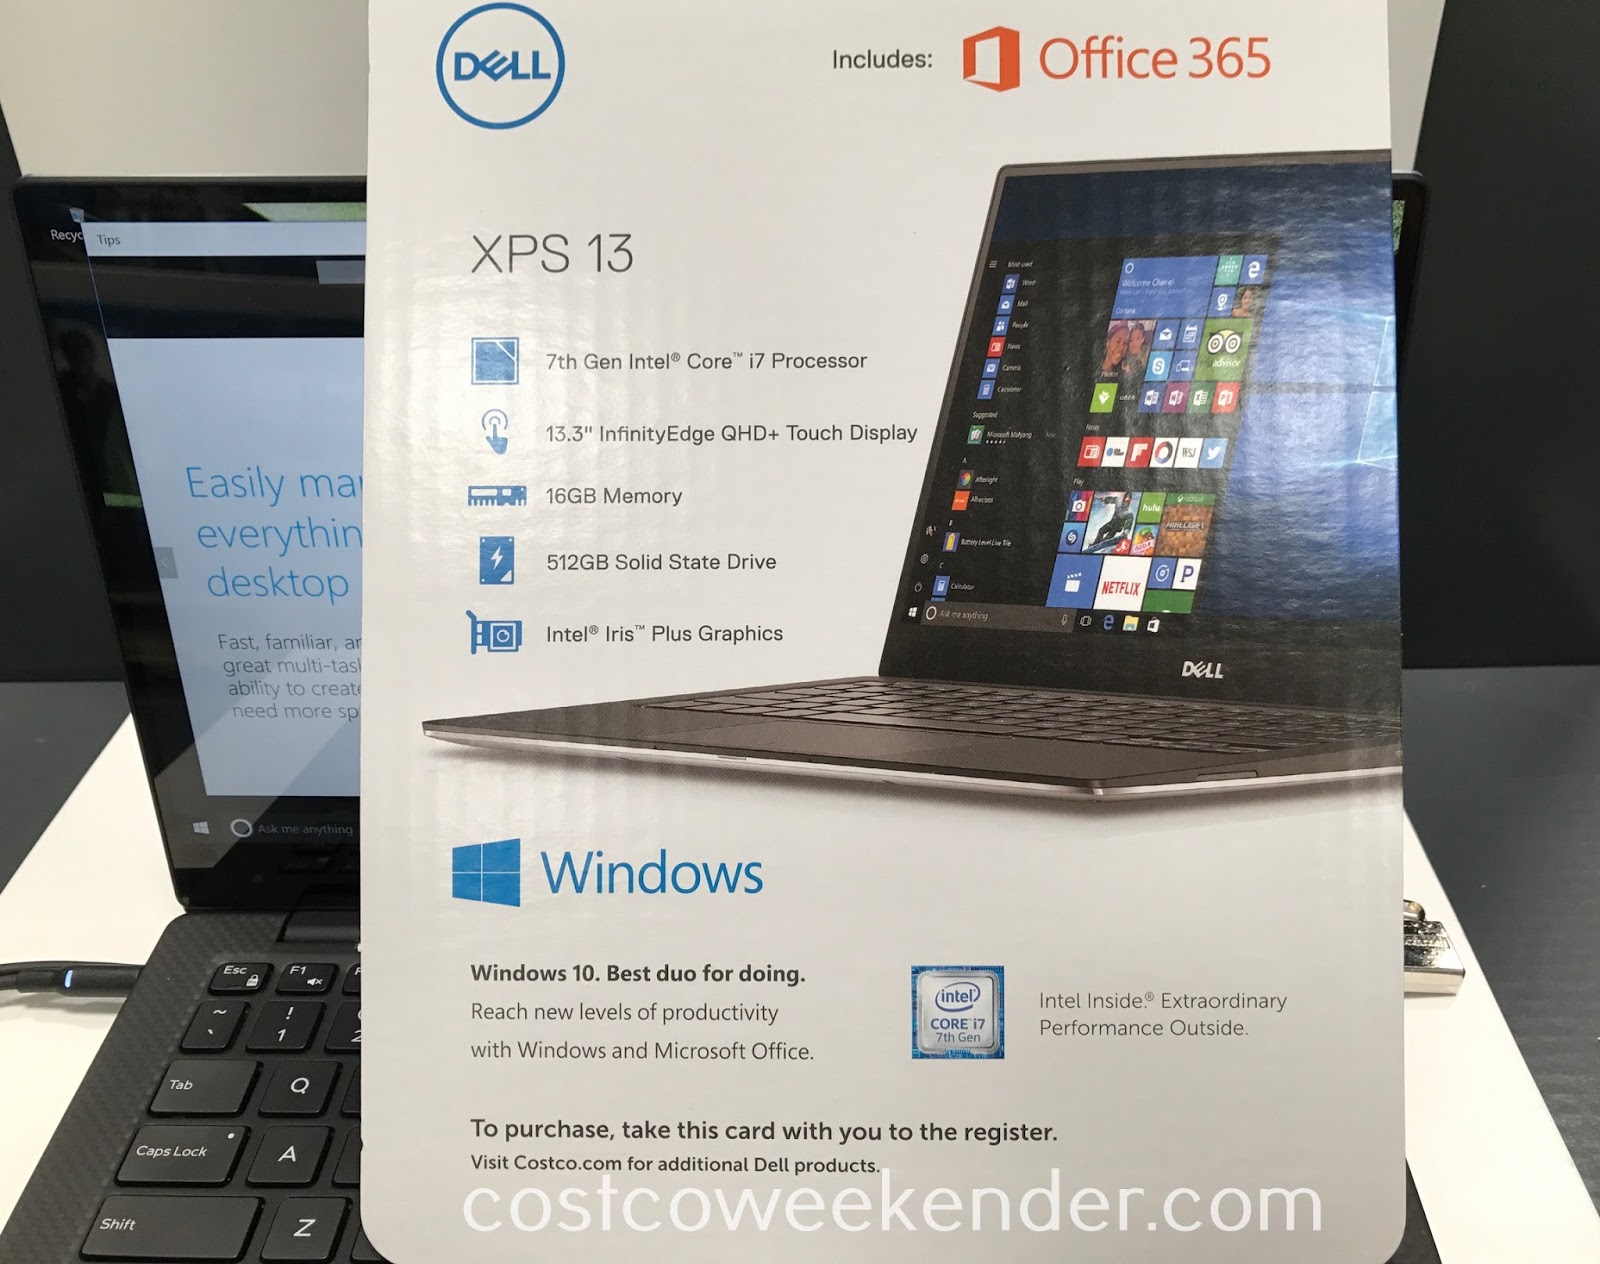 Costco 1136247 - Dell XPS 13 Laptop with Office 365 Personal: great for home, school, office, and travel